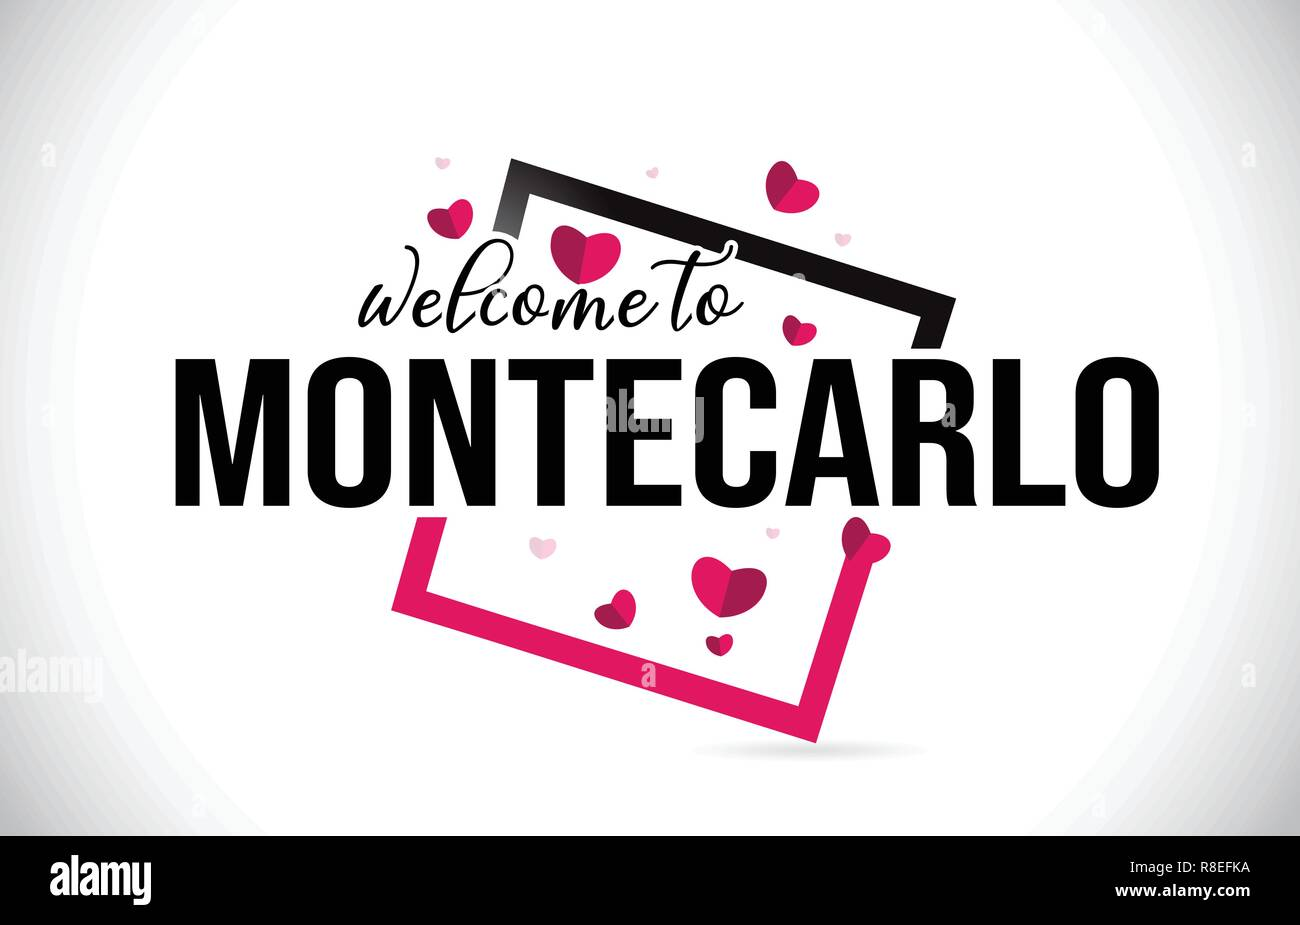 MonteCarlo Welcome To Word Text with Handwritten Font and  Red Hearts Square Design Illustration Vector. - Stock Vector